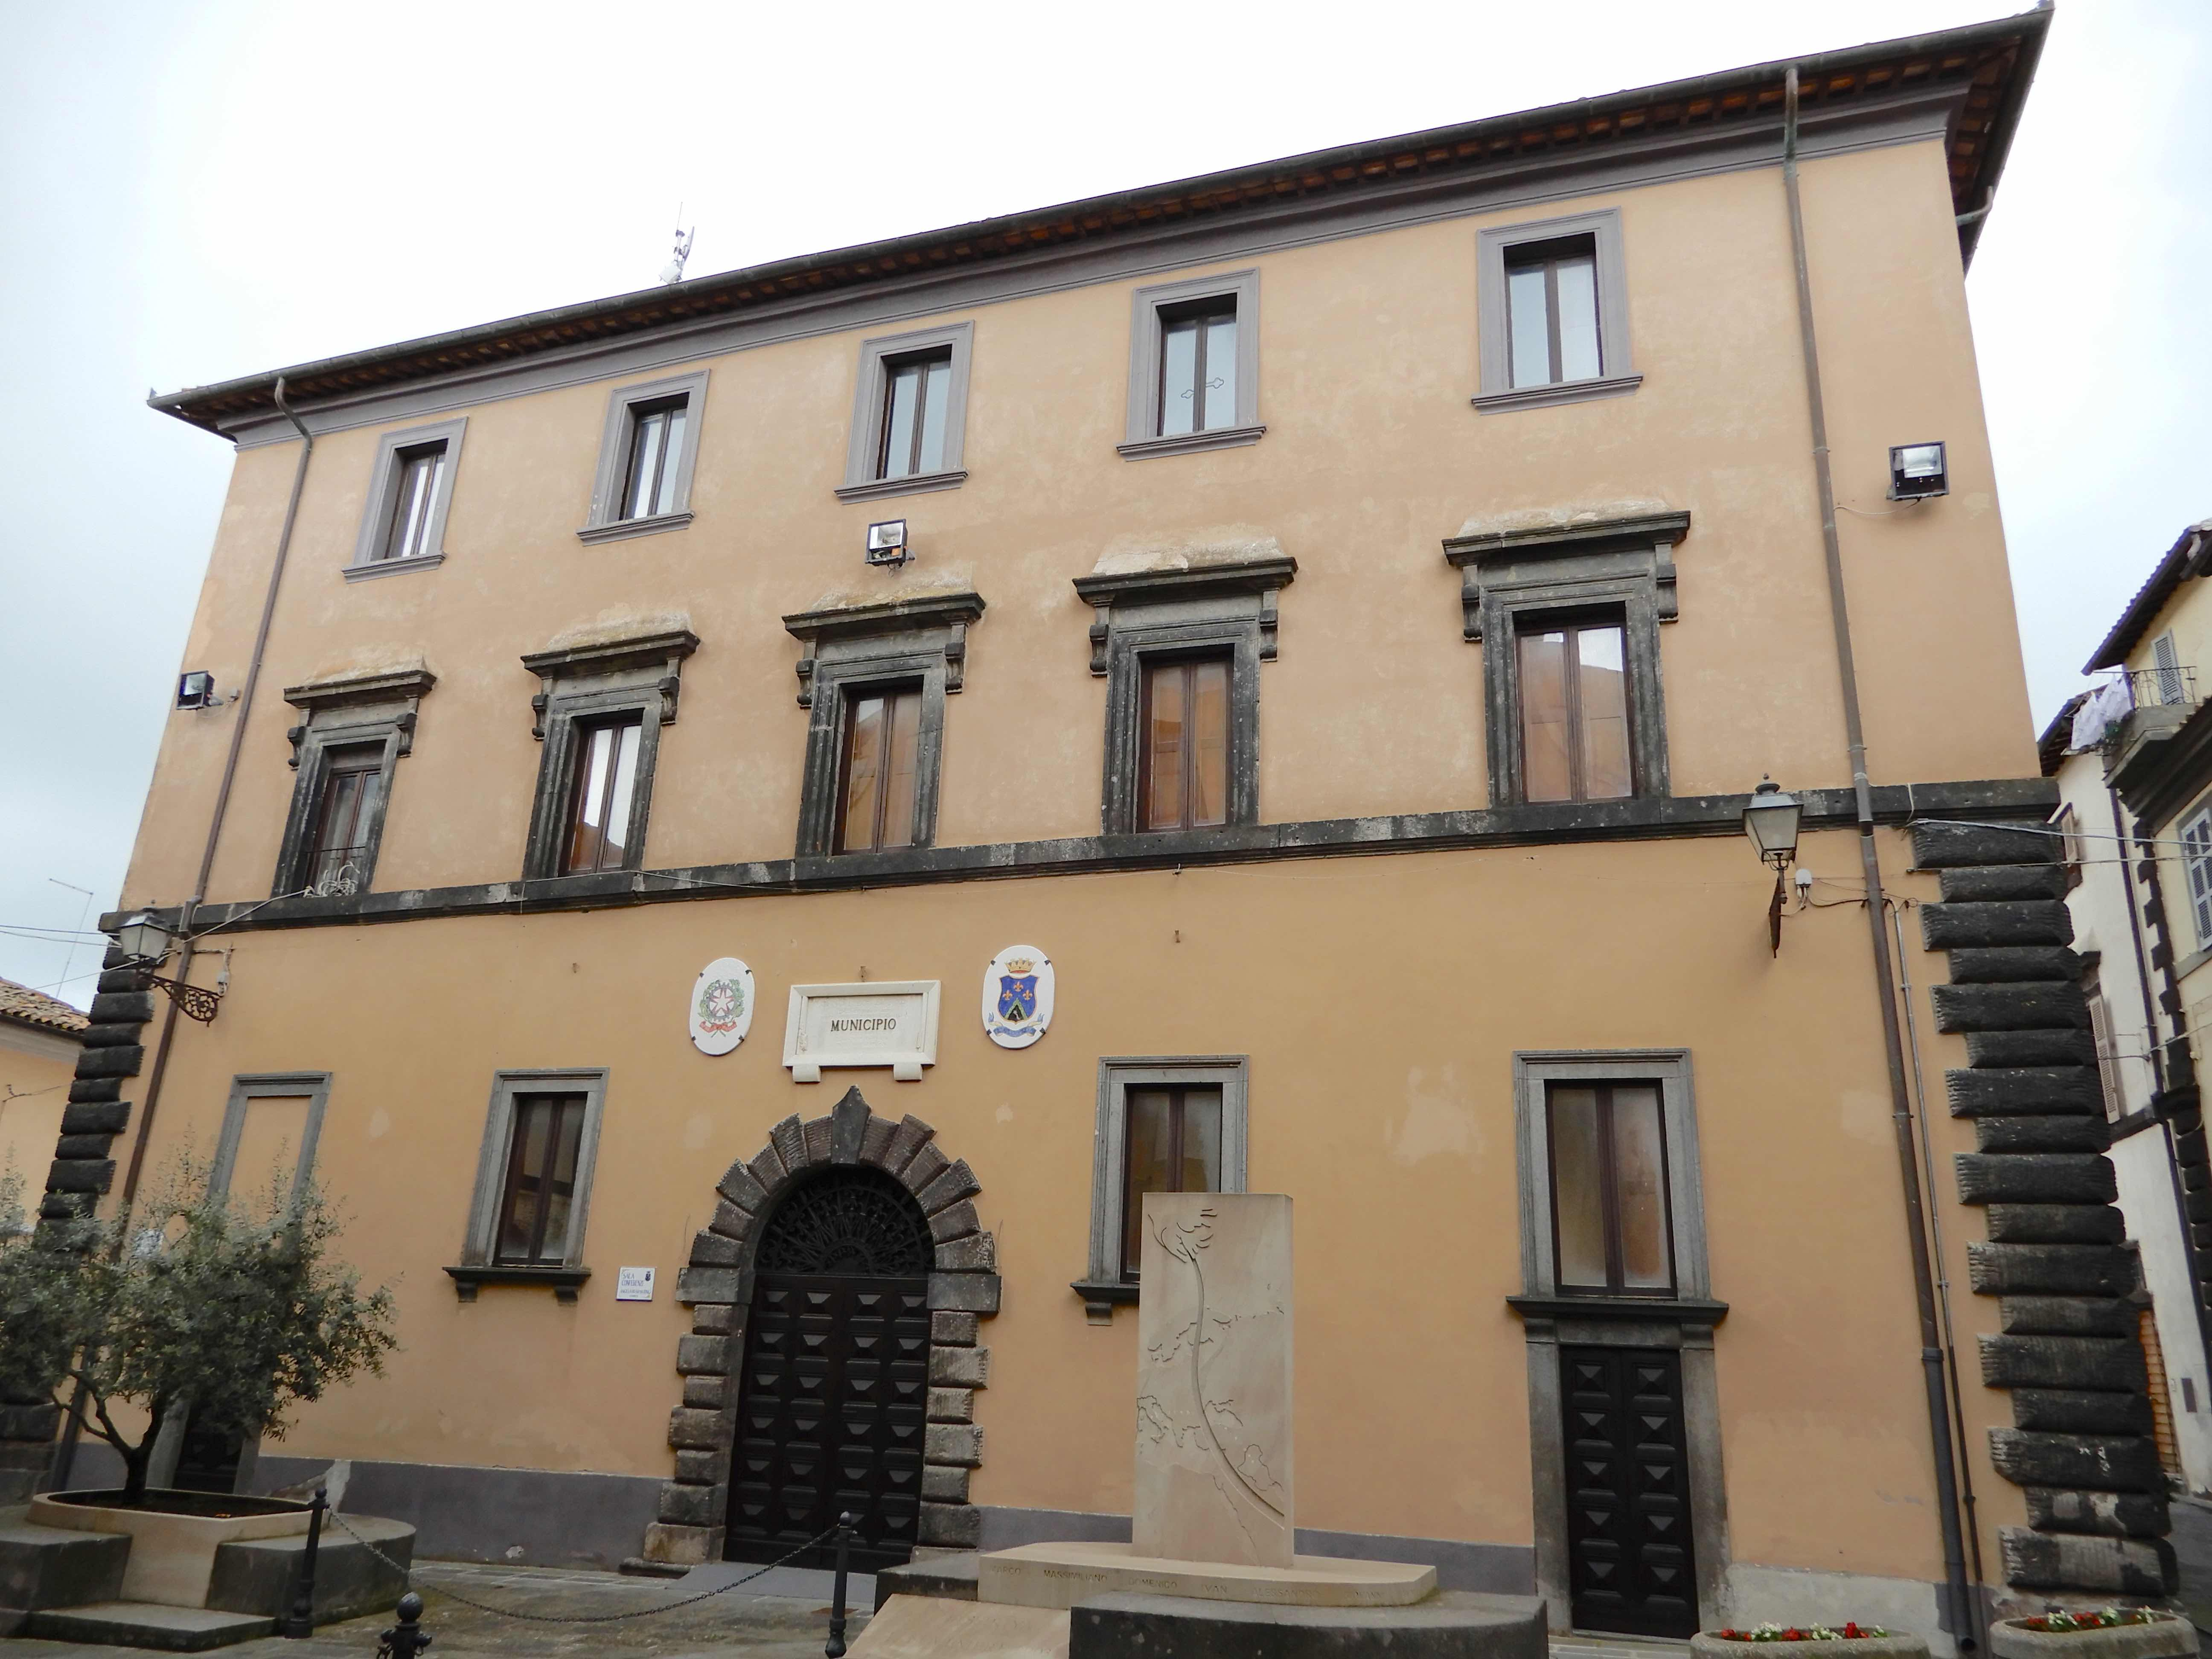 20.Town Hall